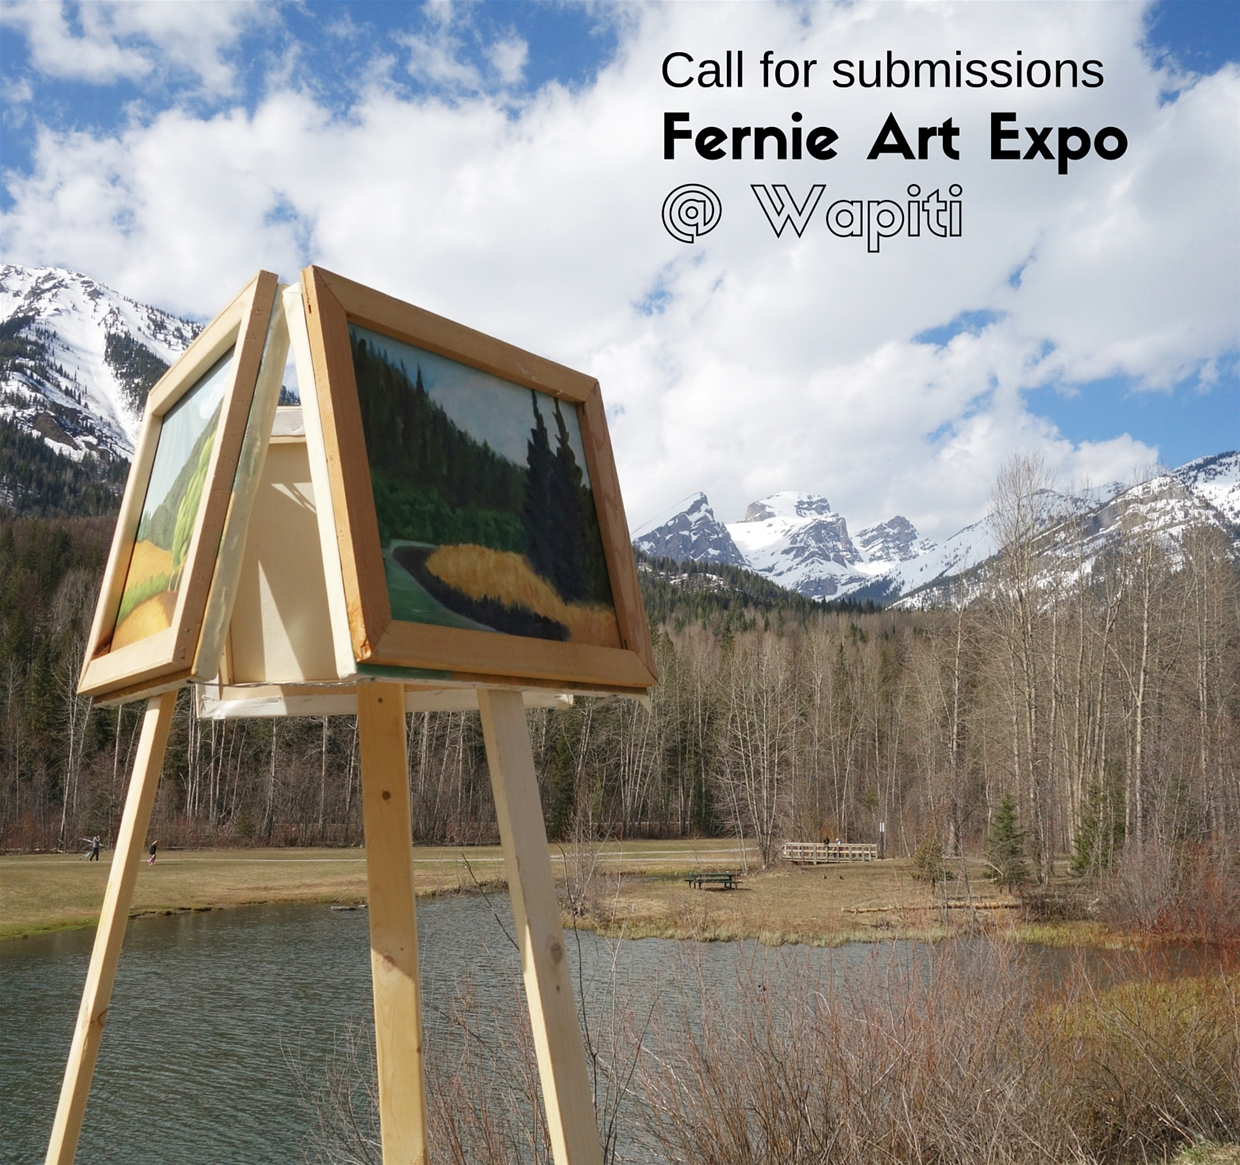 Art Expo at Wapiti Festival 2016